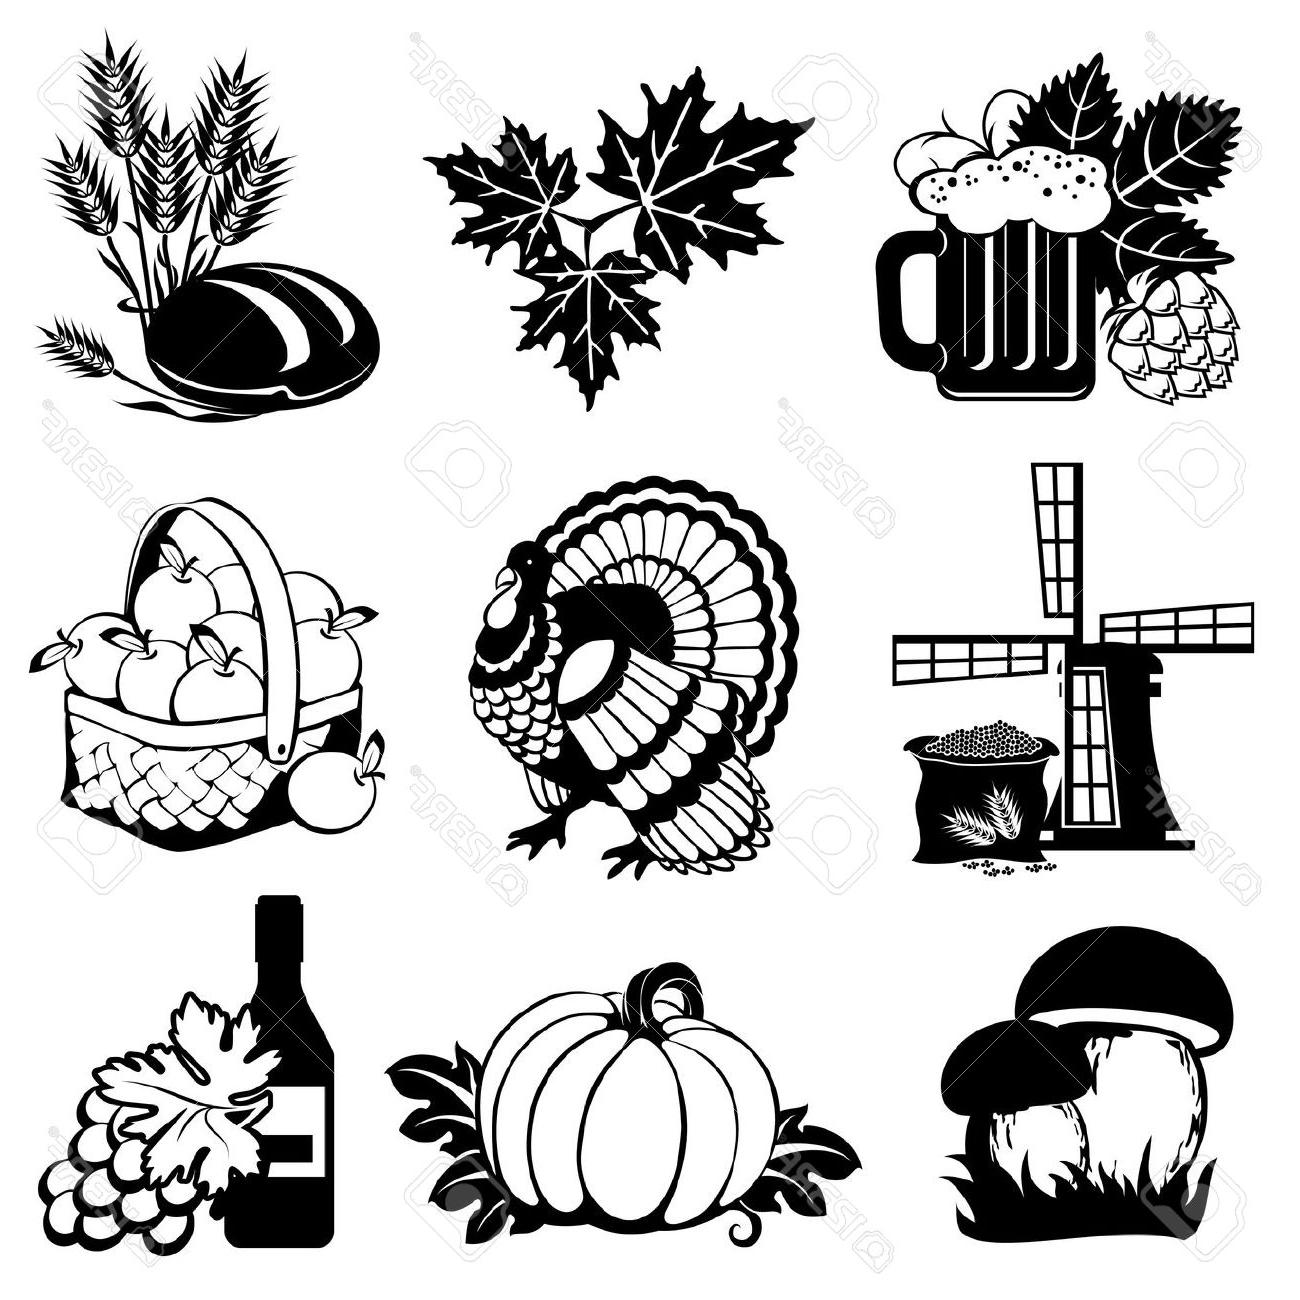 1300x1300 Best Free Harvest Silhouette Fall Clipart Image